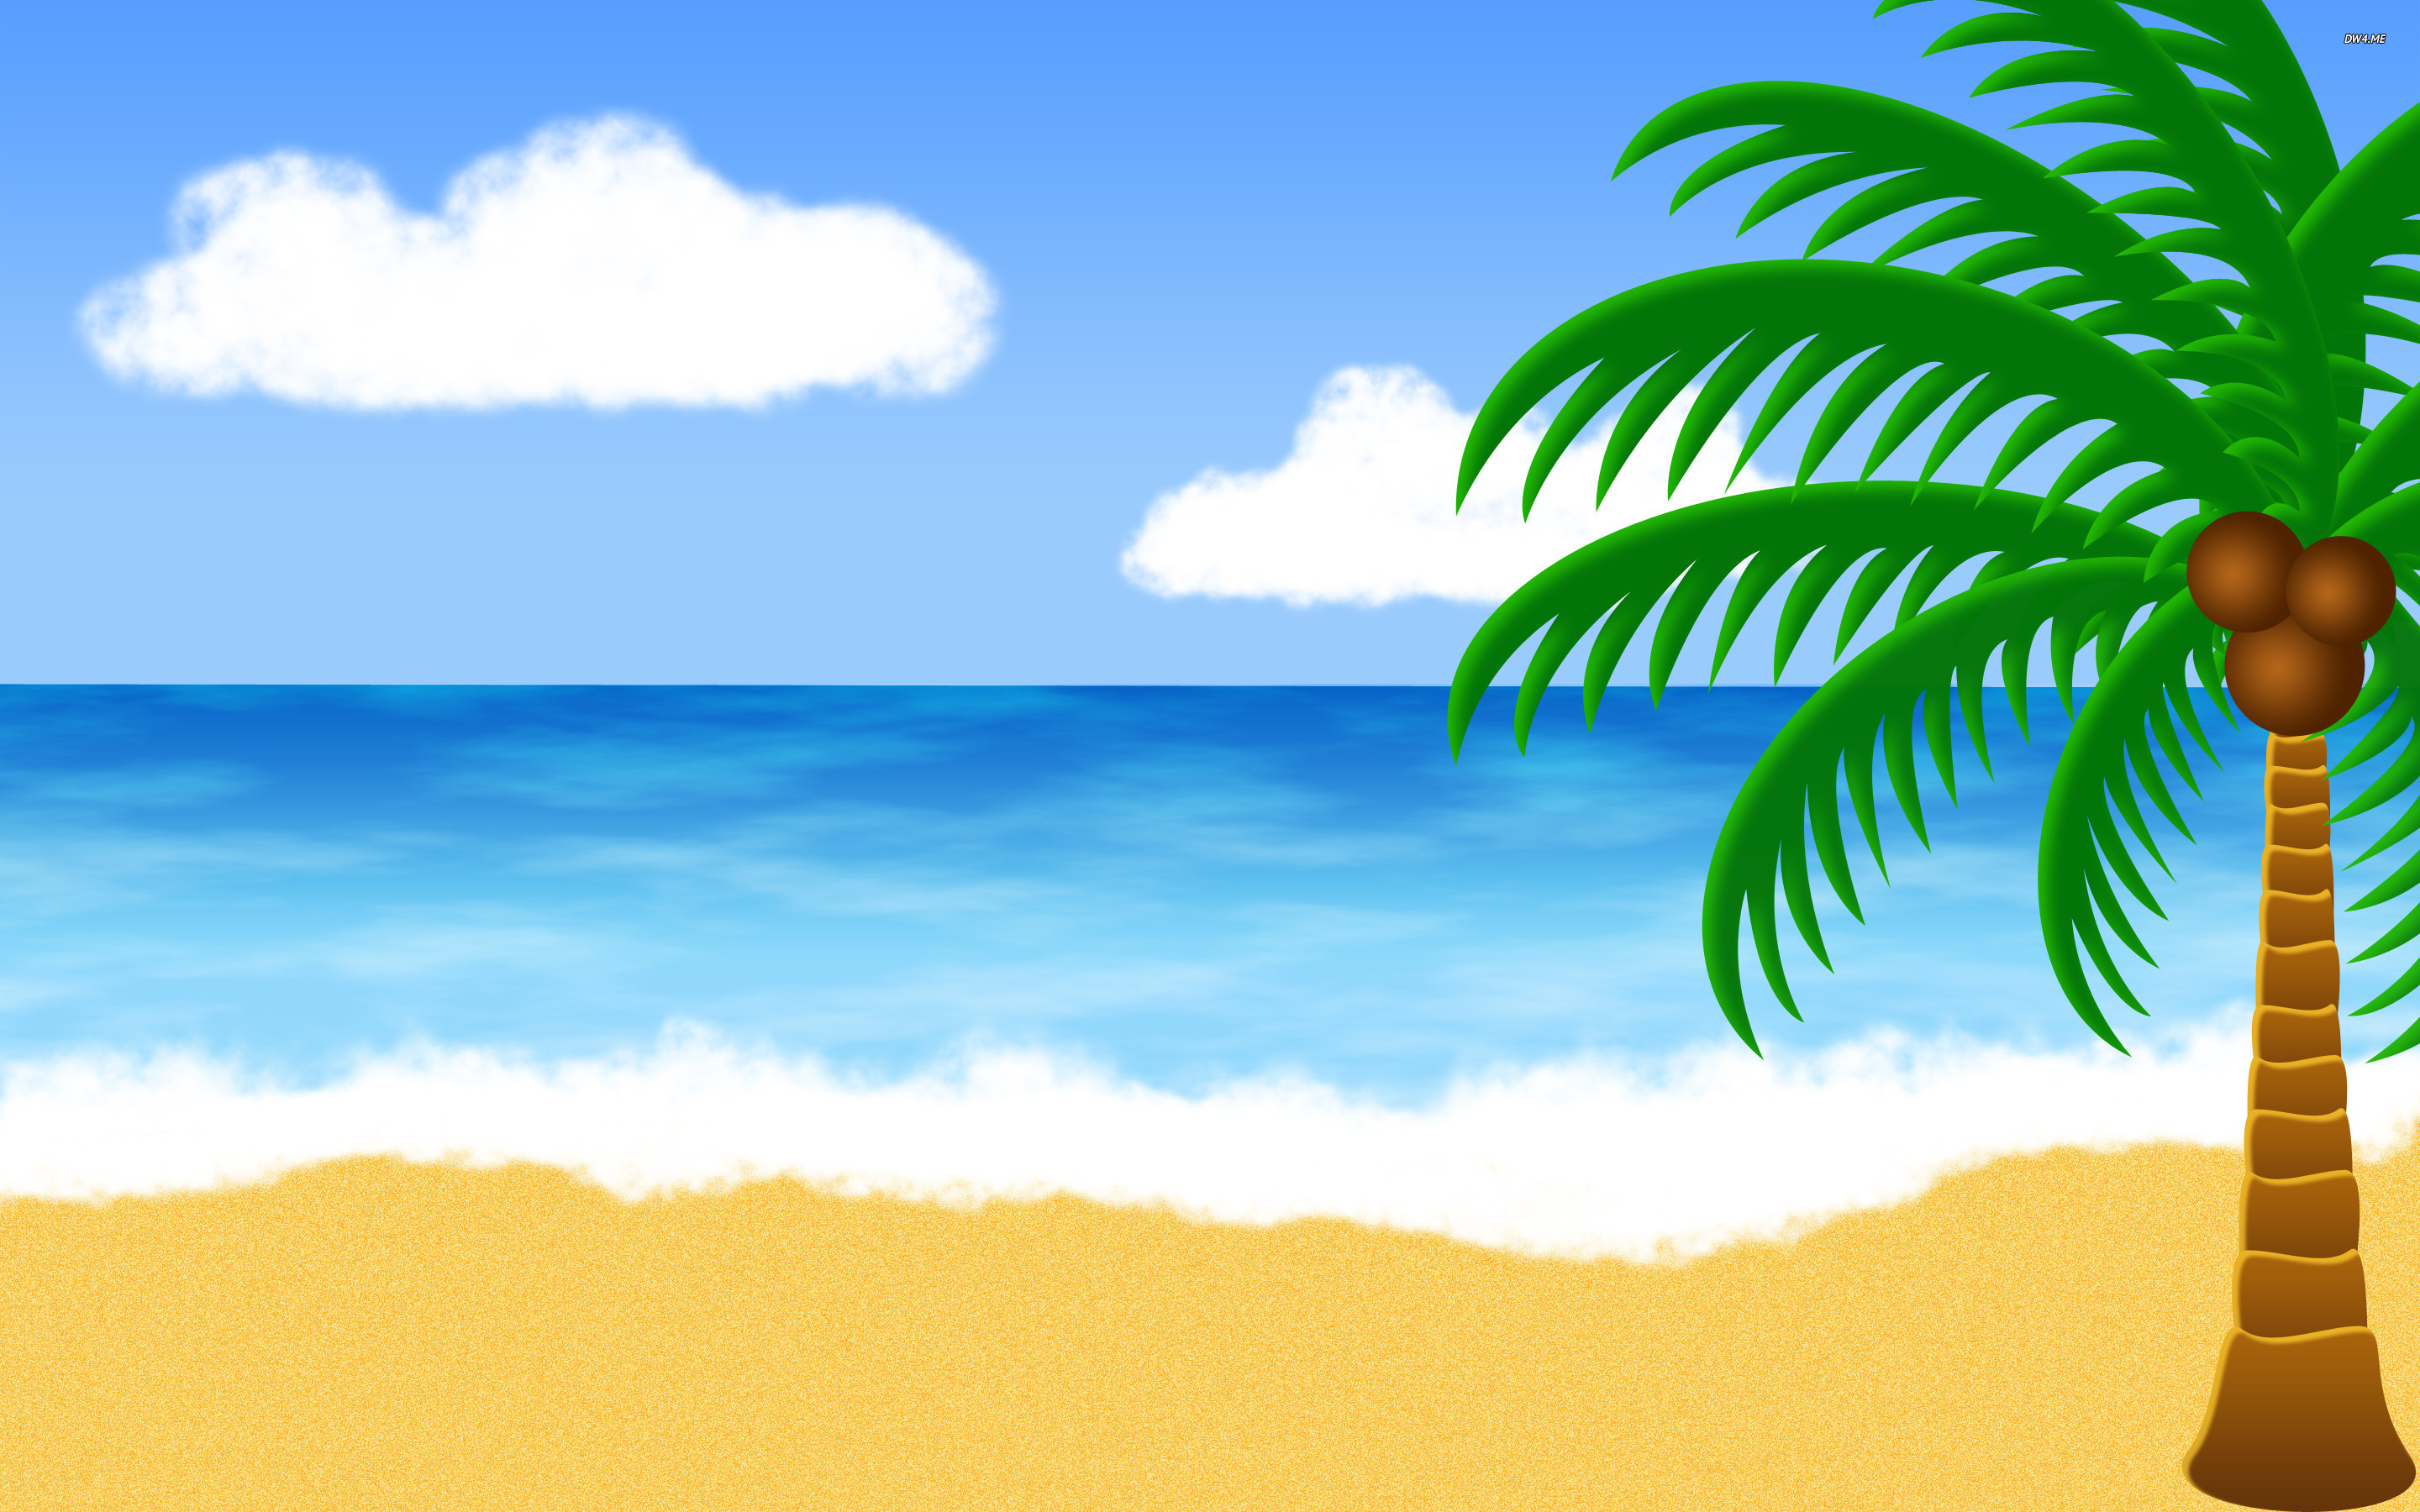 Cartoon Beach Background Clipart.